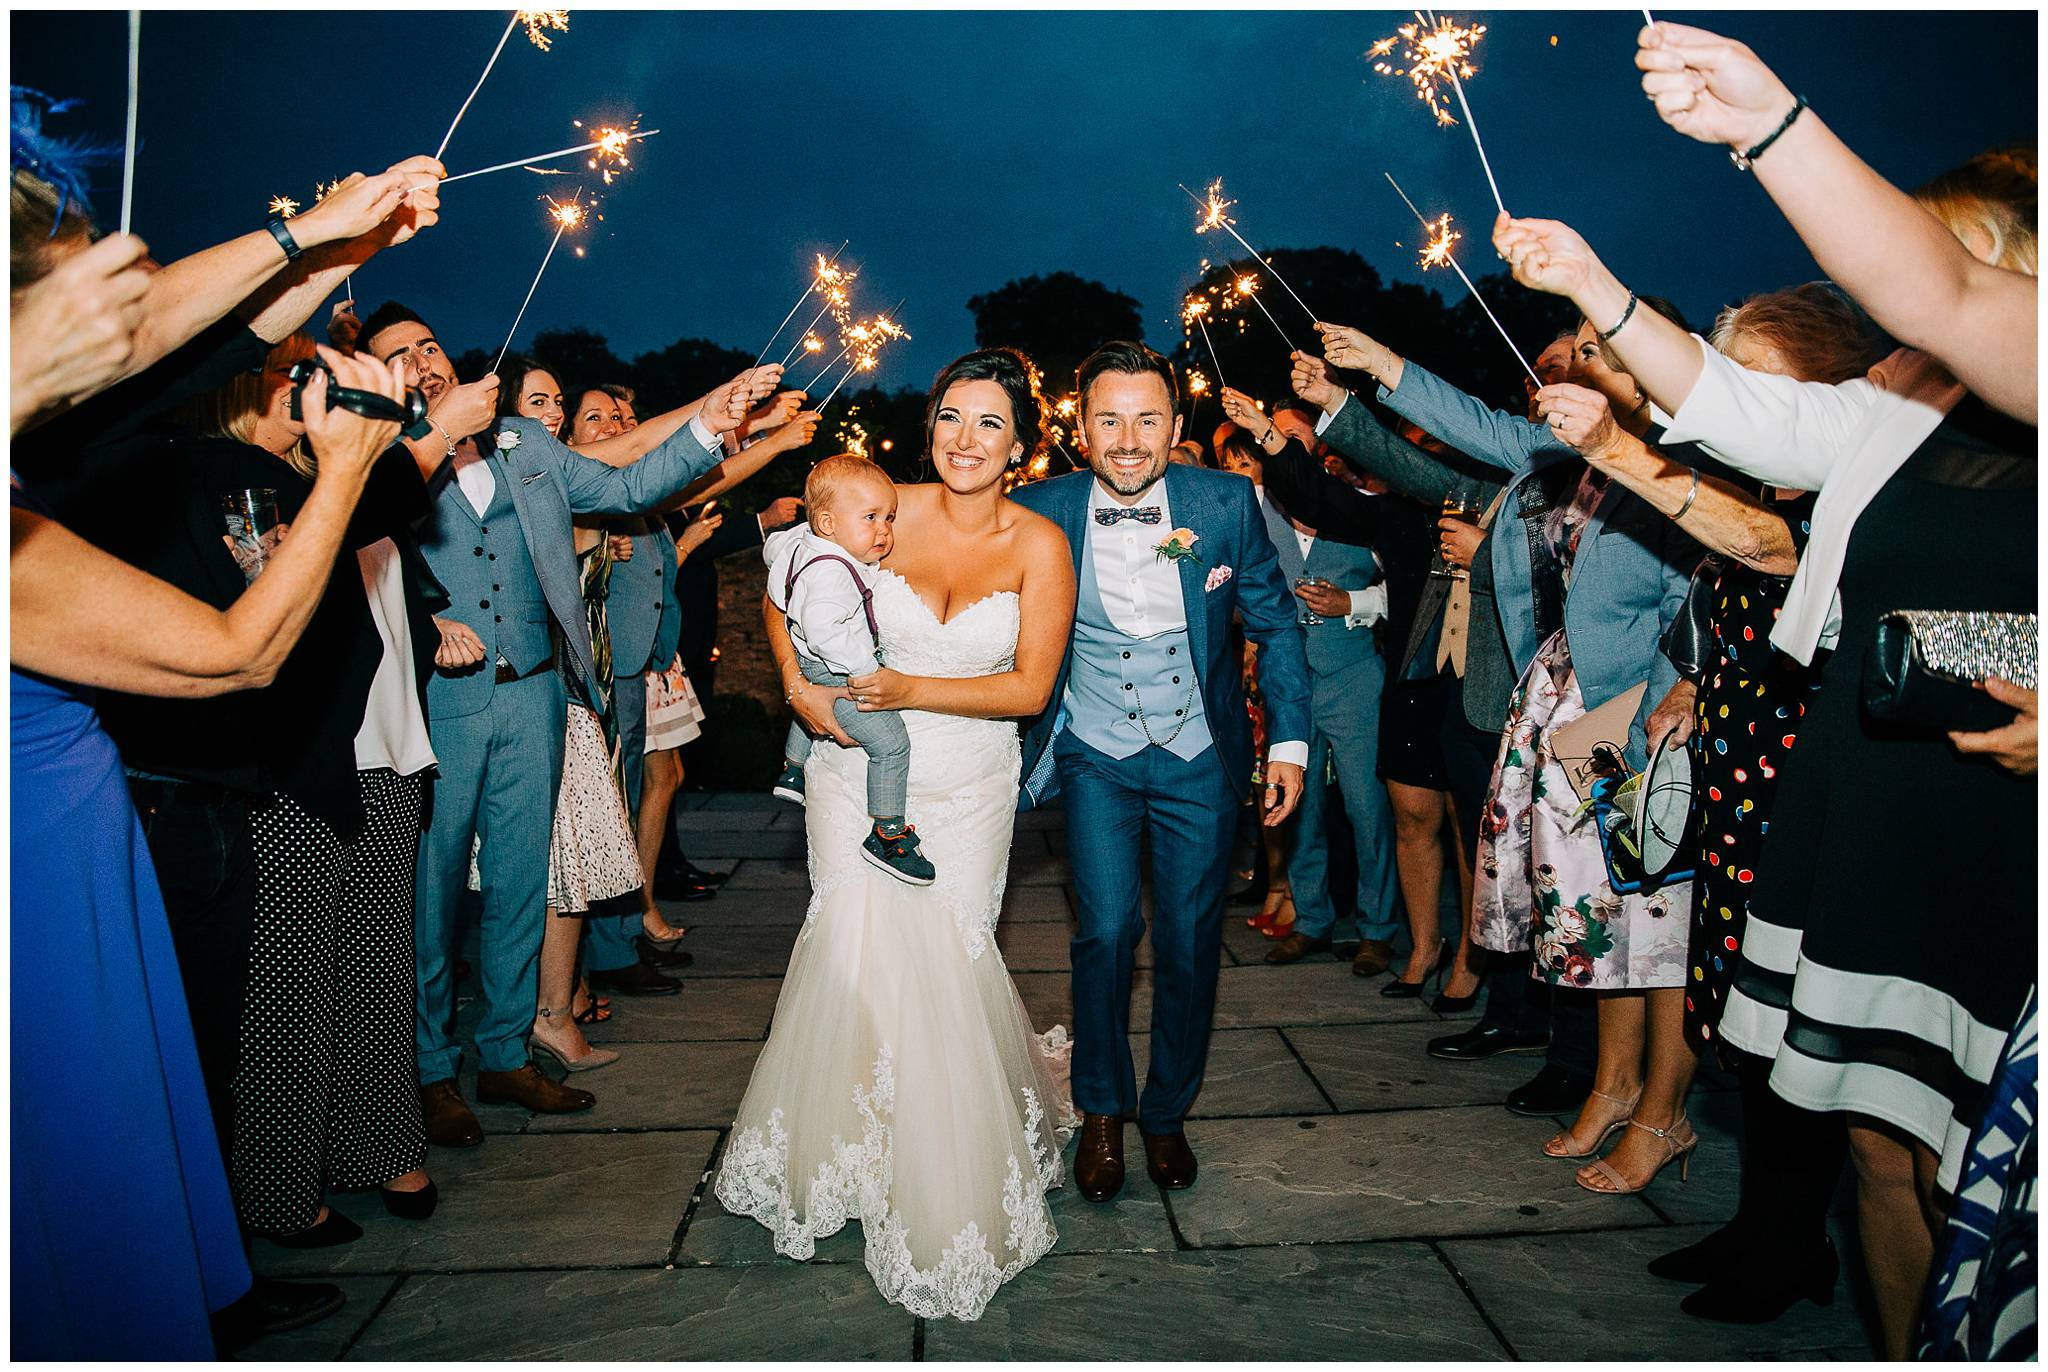 Chic Summer Wedding at Hazel Gap Barn - Nottinghamshire Photographer69.jpg